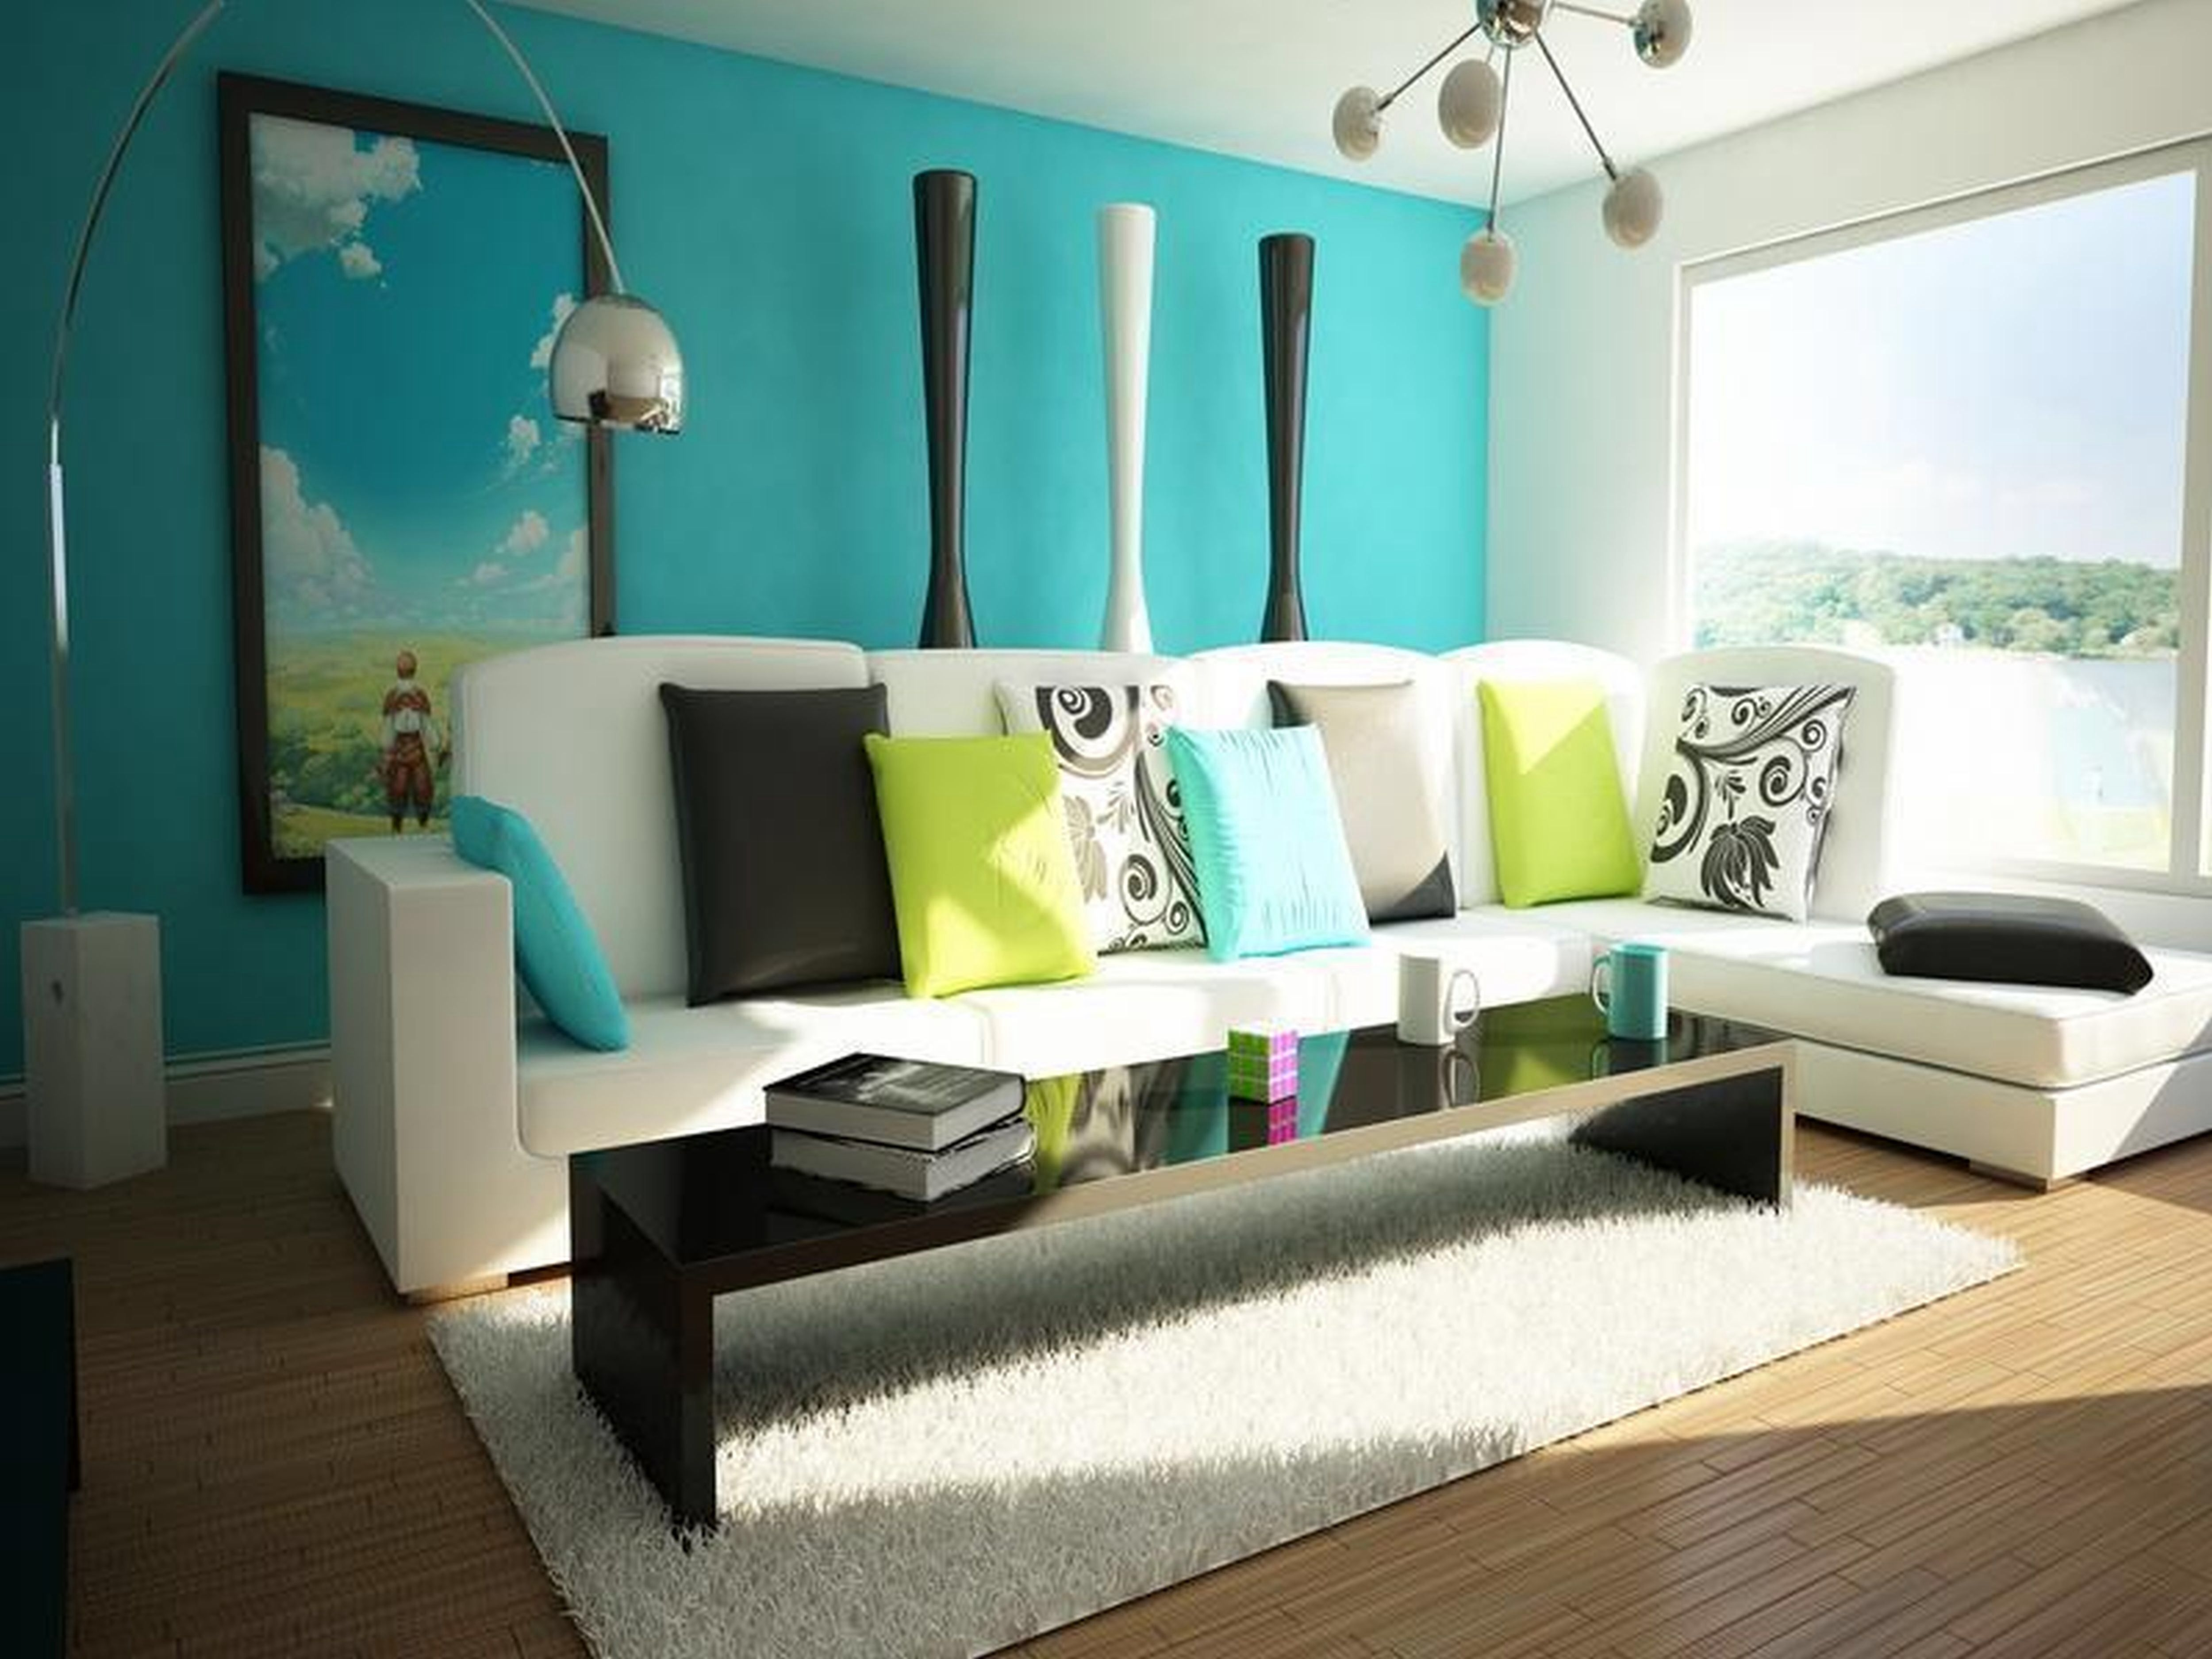 Modern Style Living Room With Teal Lime Green Black White Living Room Turquoise Colorful Living Room Design Blue And Green Living Room #teal #and #black #living #room #ideas